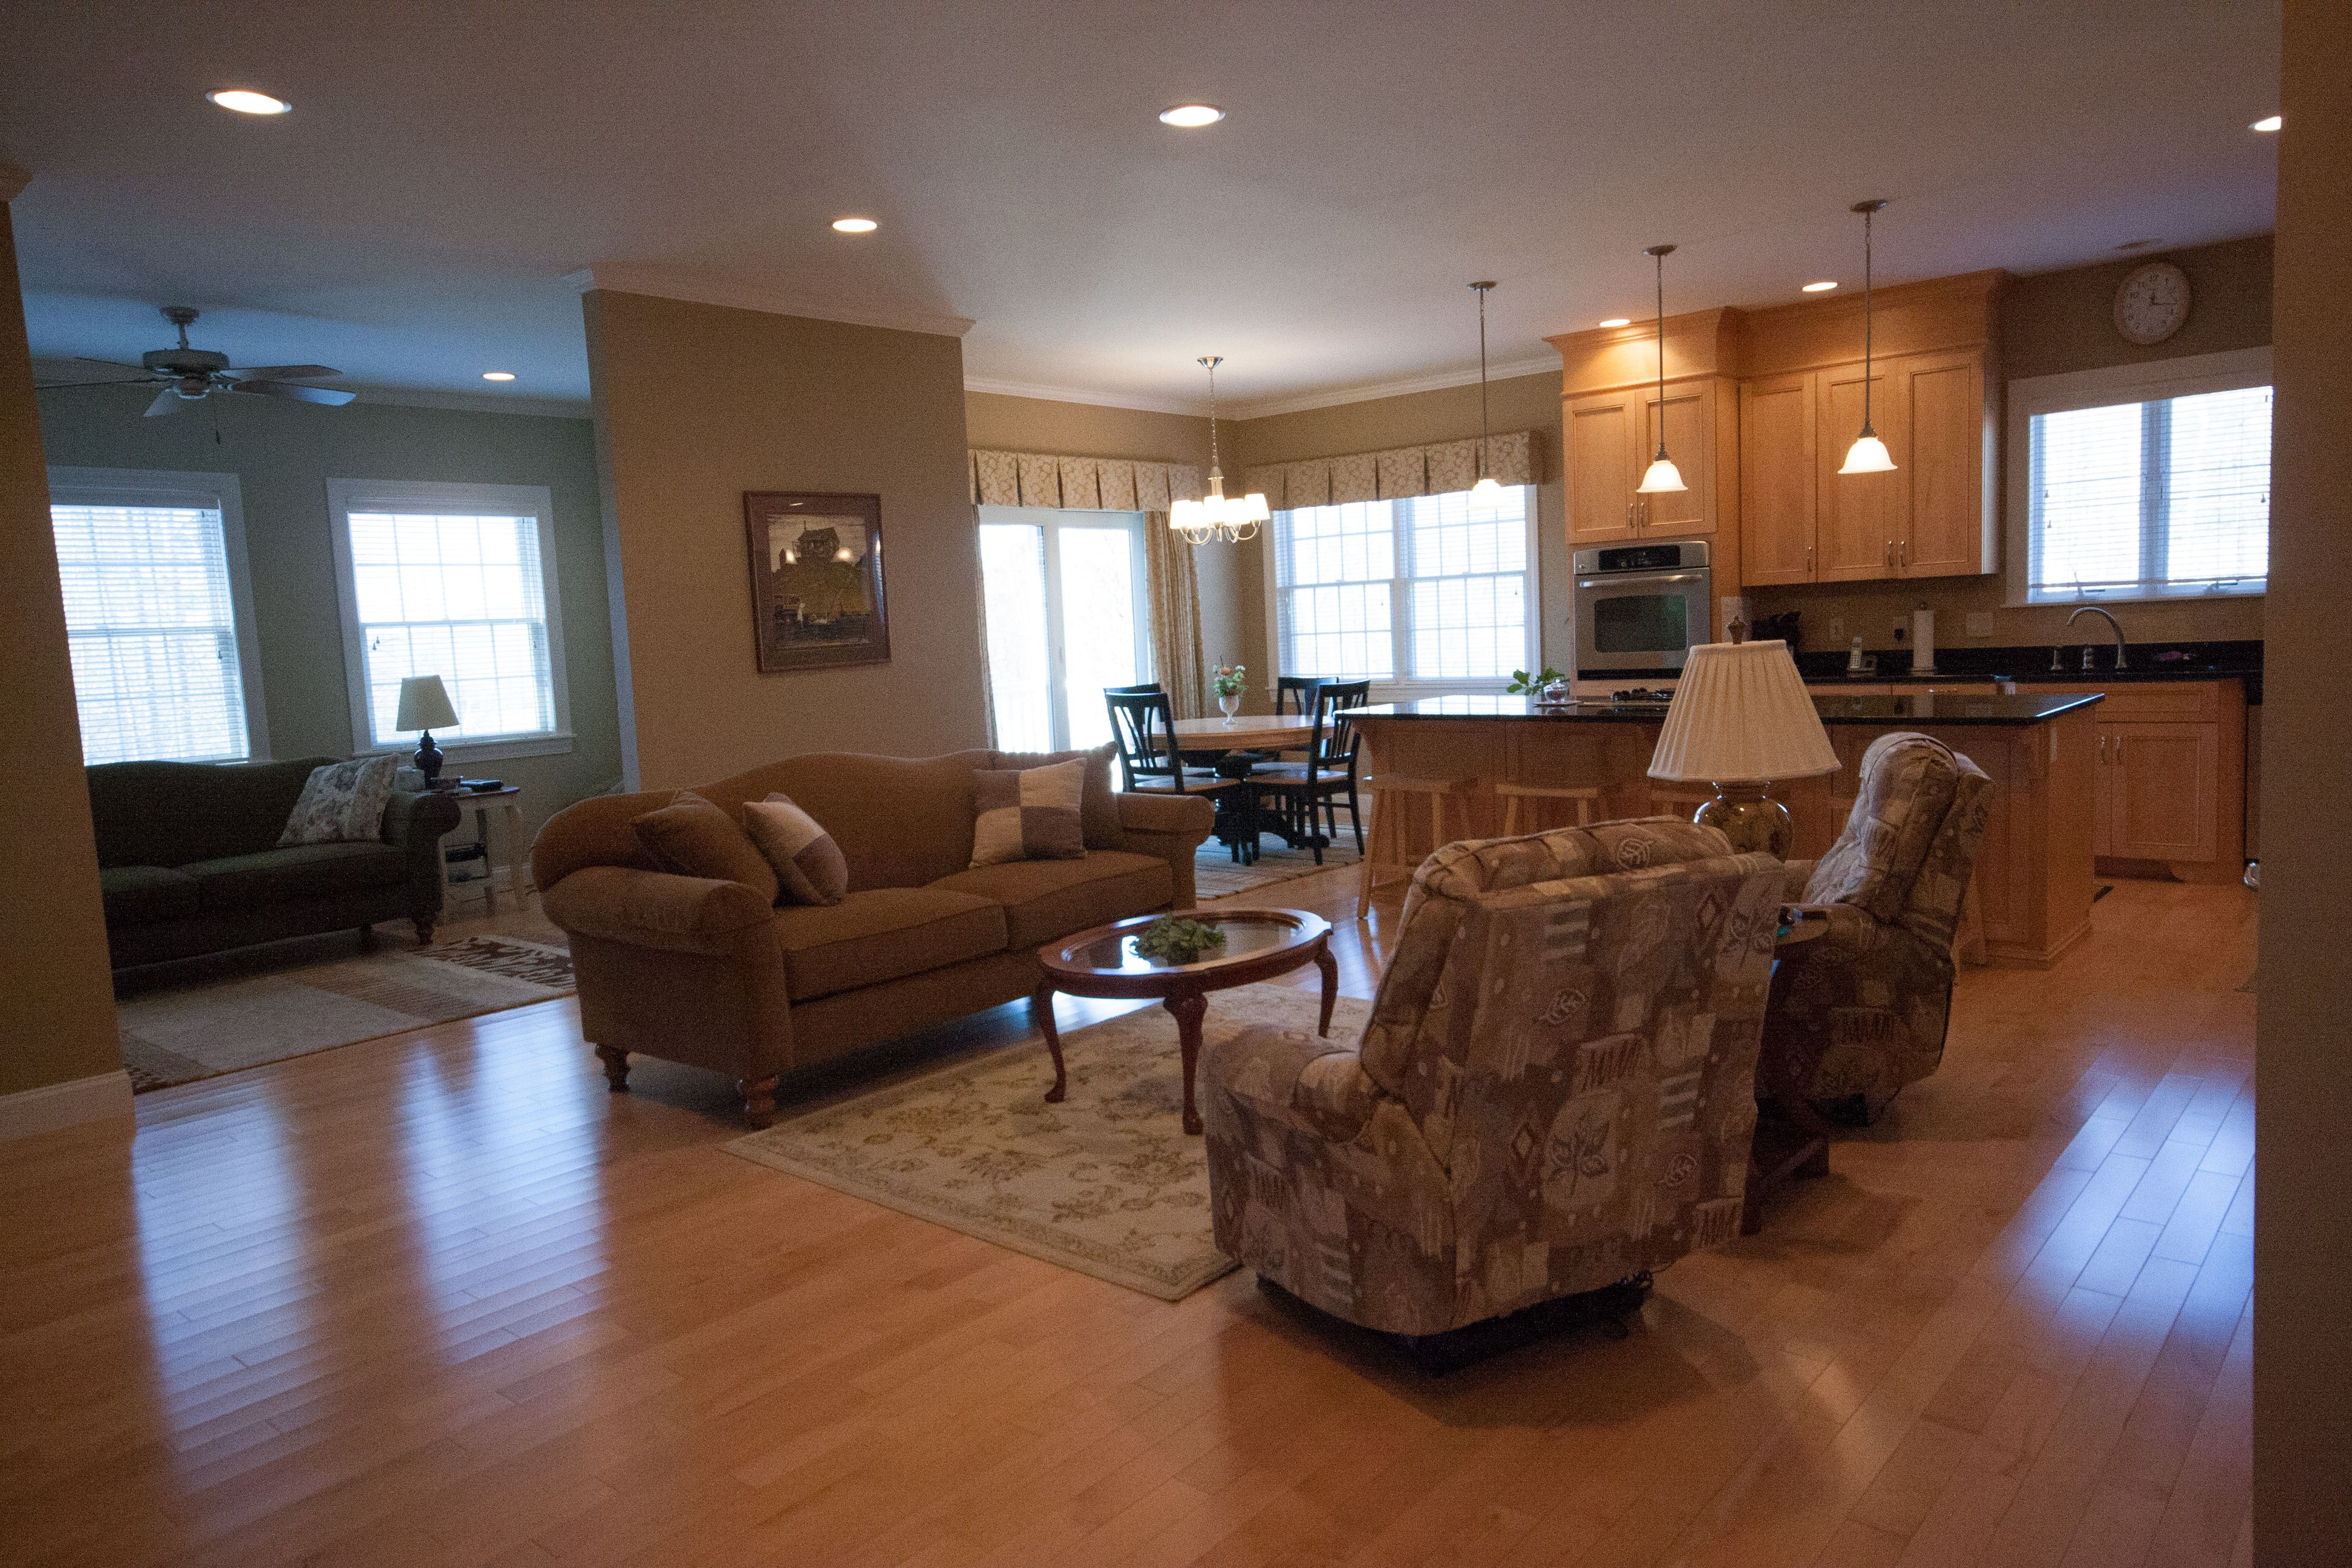 Living Area featured in the Payson By Davis Construction Services in Burlington, VT